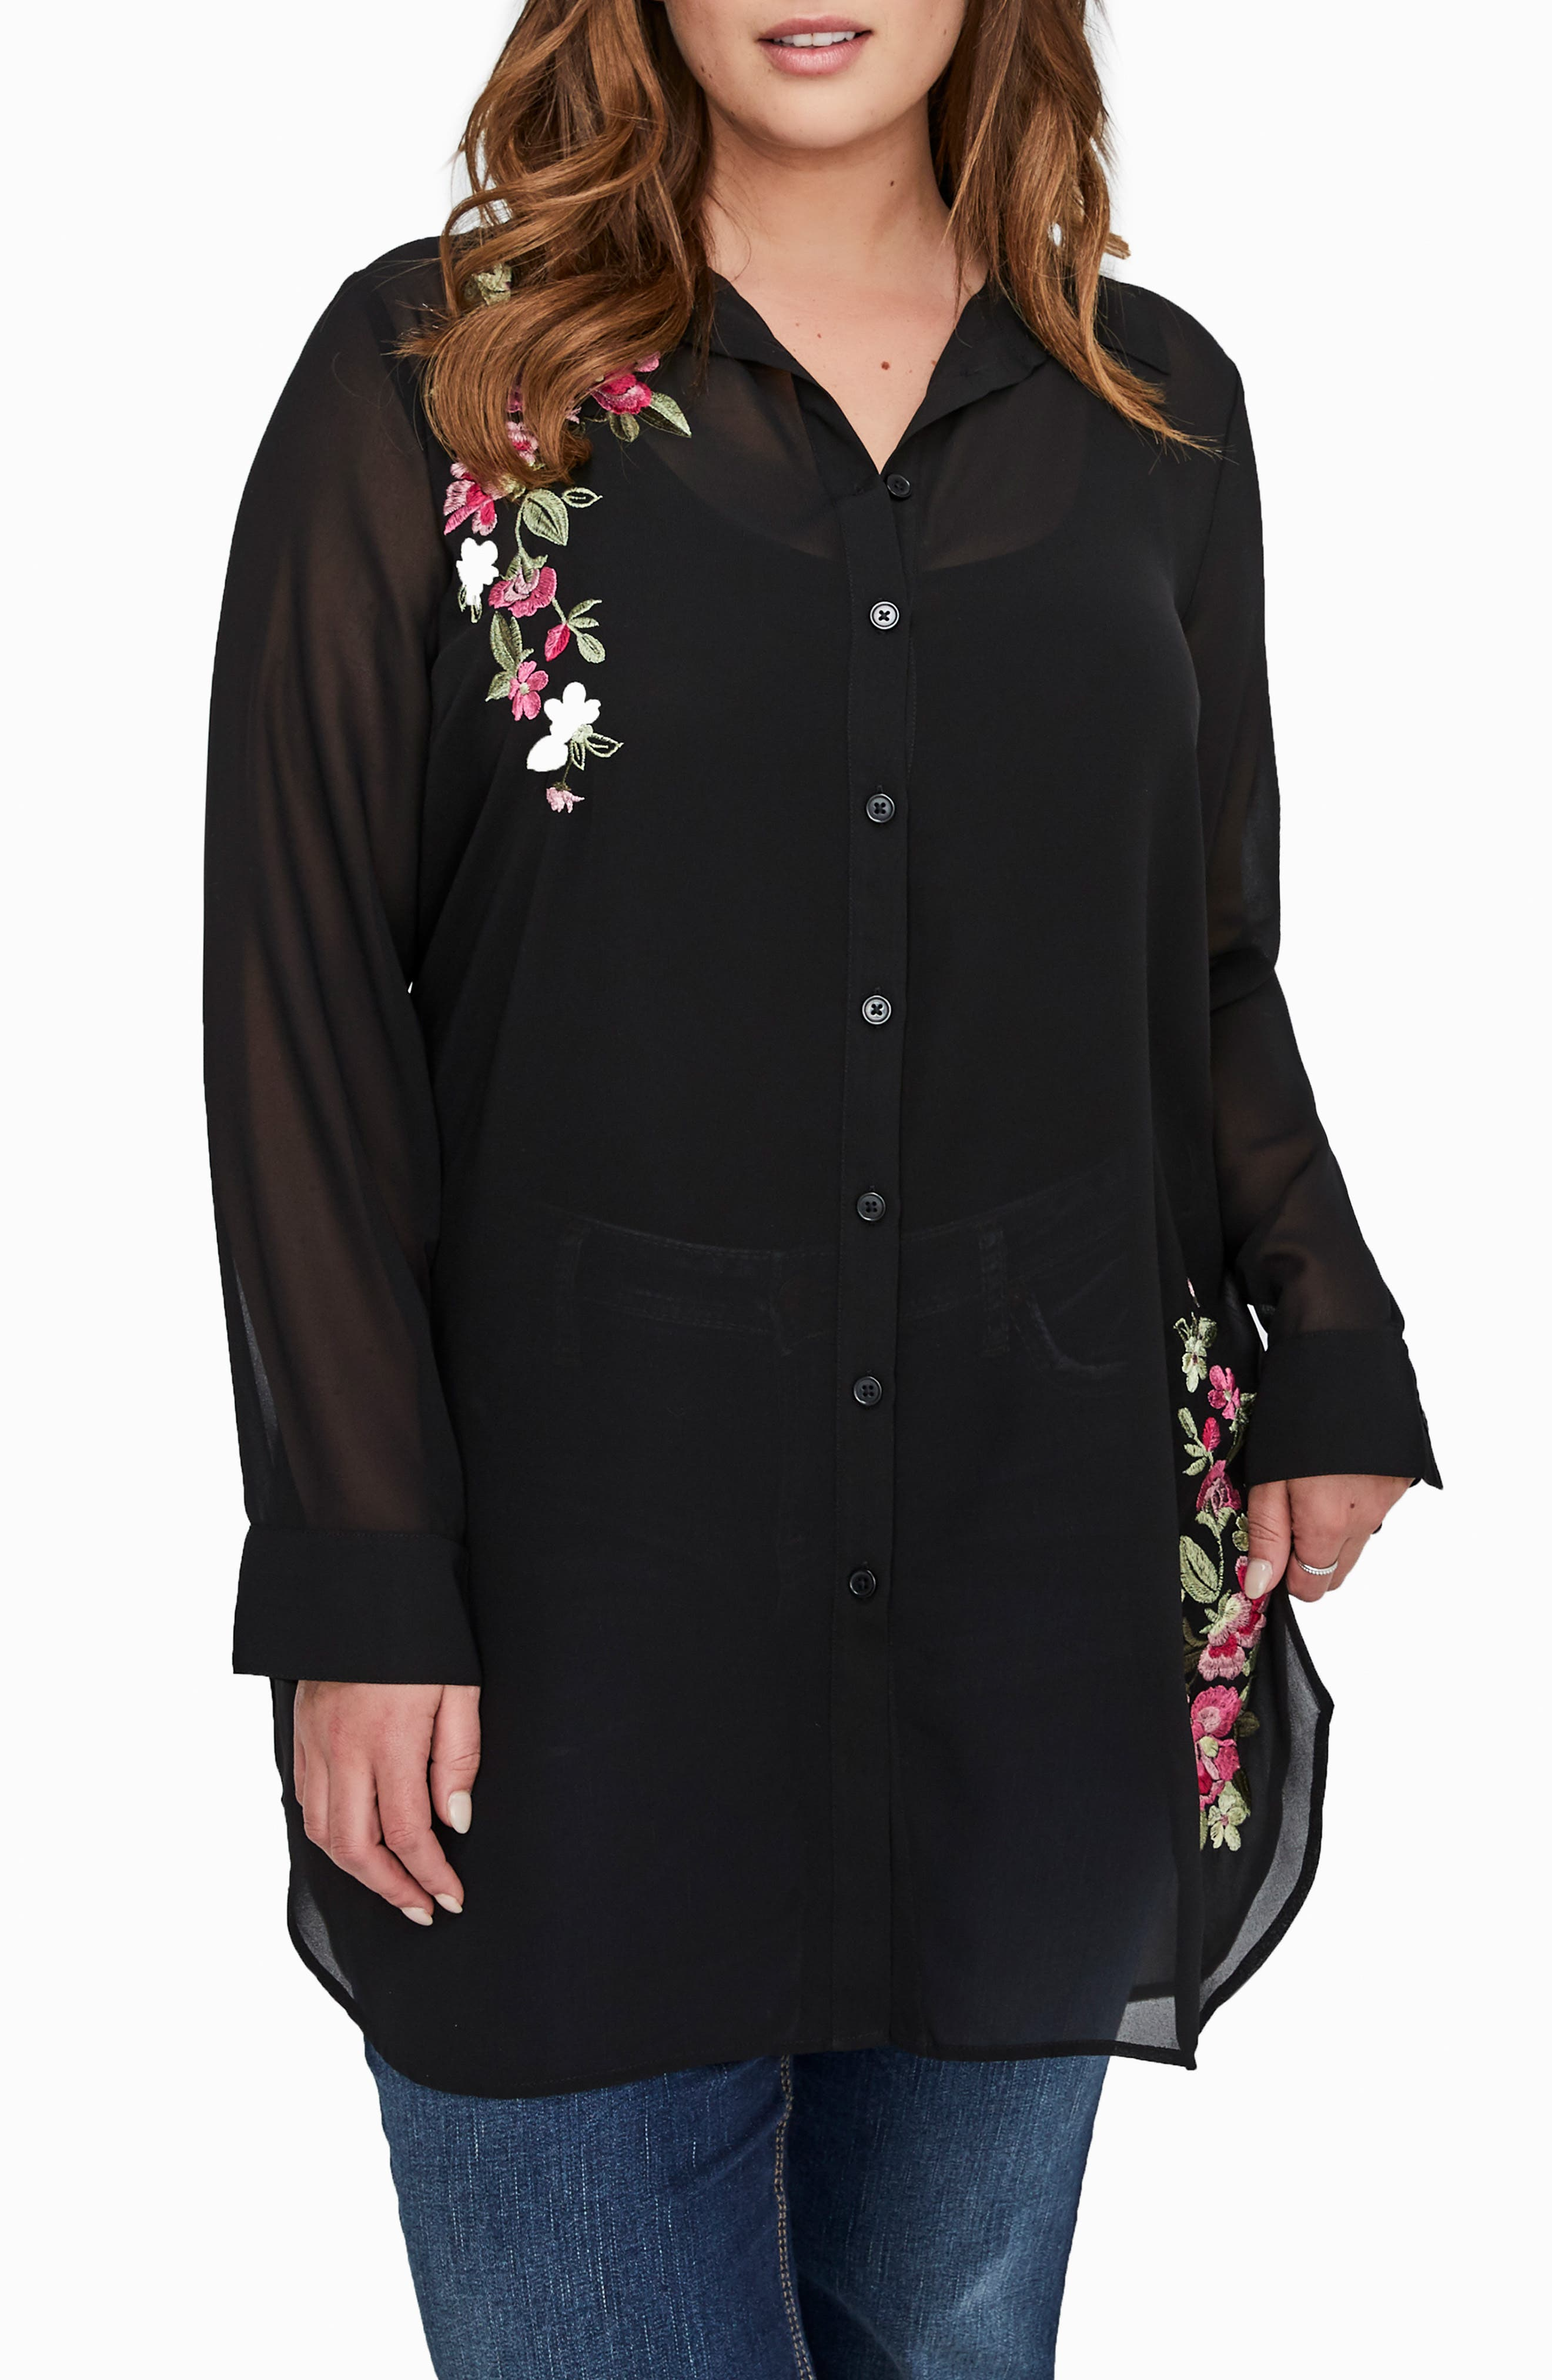 MICHEL STUDIO Embroidered Flower Sheer Shirt, Main, color, 001